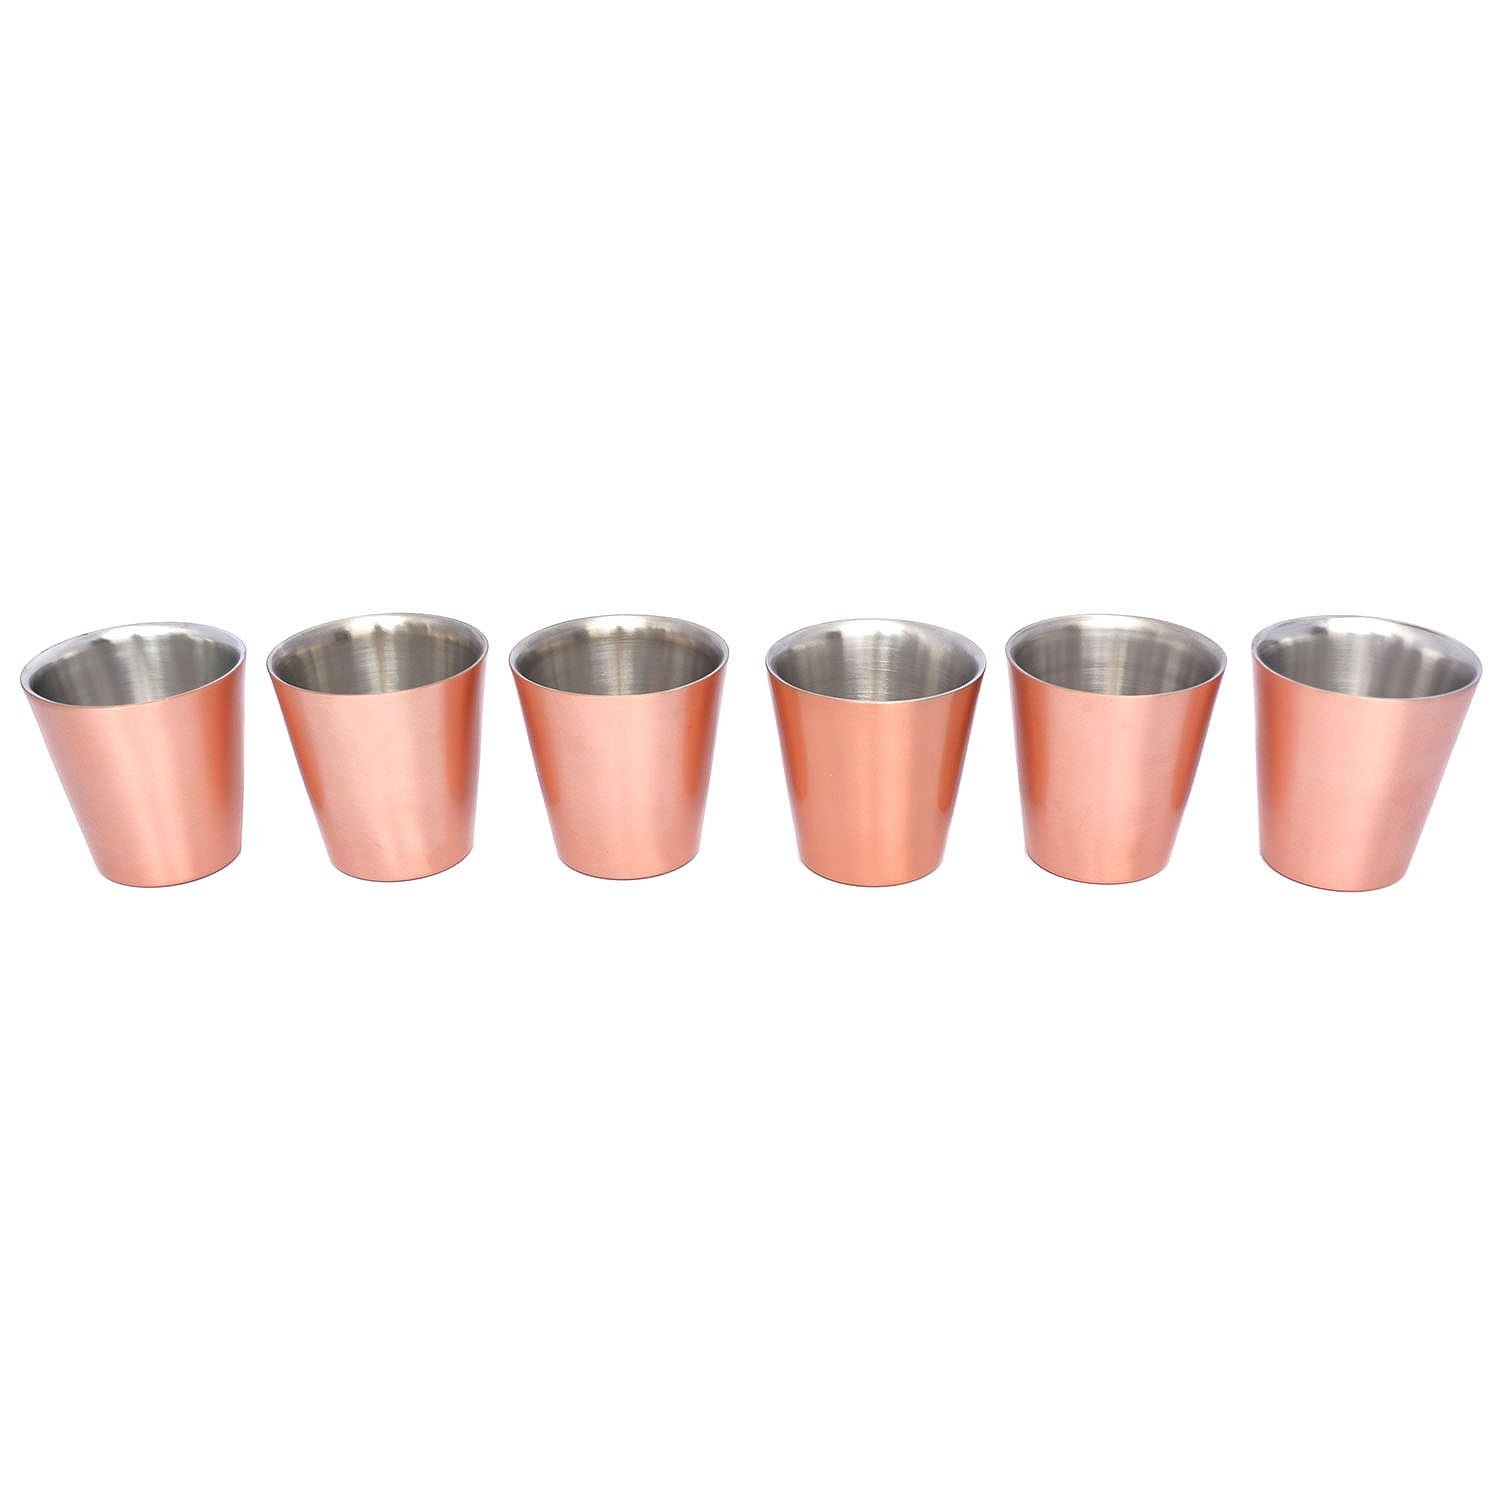 Member's Mark 14 oz. Double-Wall Shorty Mule Mug, Set of 6, Copper